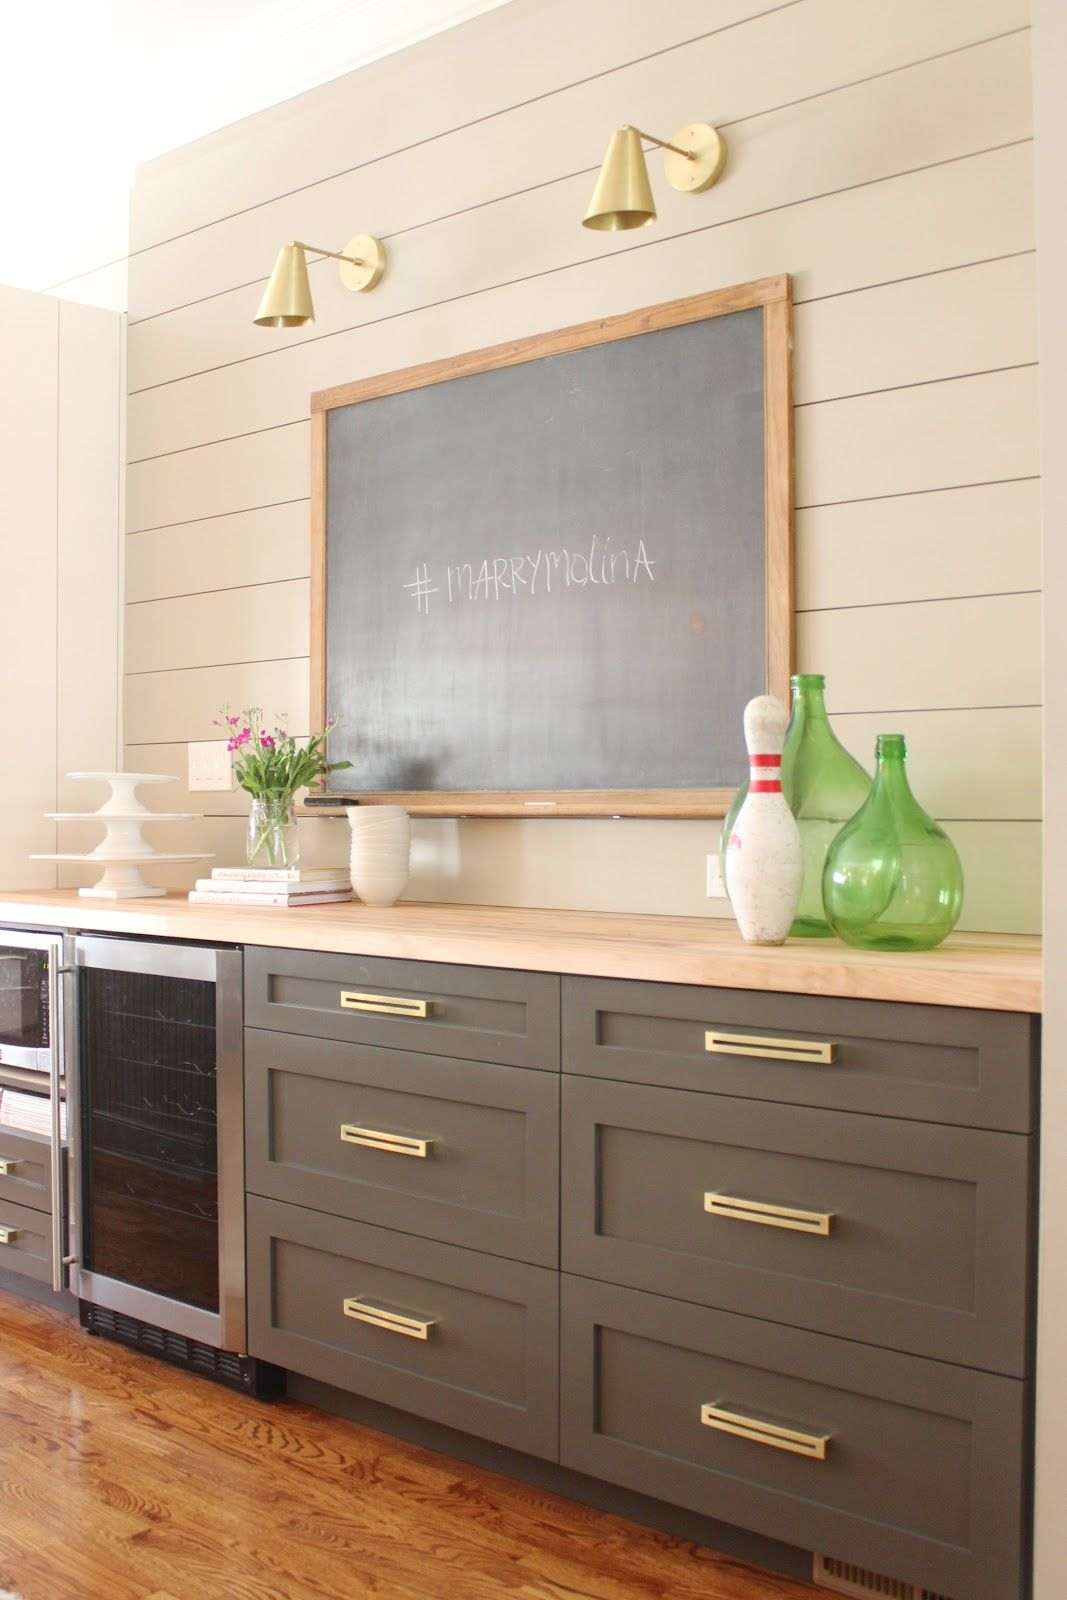 wednesday watch list | benjamin moore, kitchens and dragons